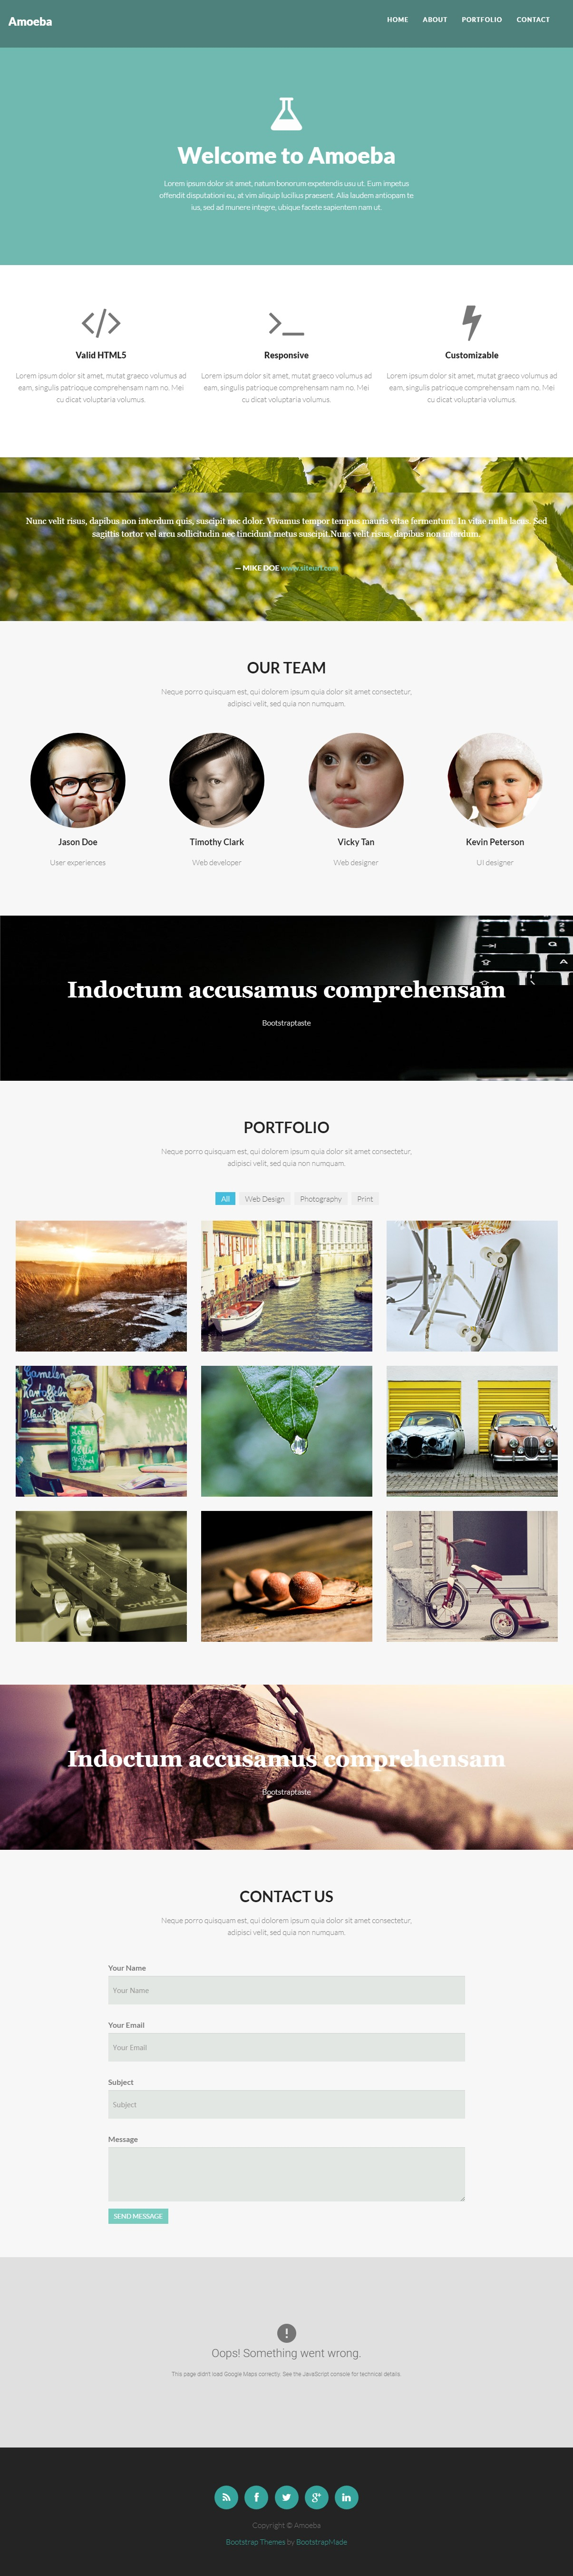 Amoeba-free-one-page-responsive-bootstrap-site-template